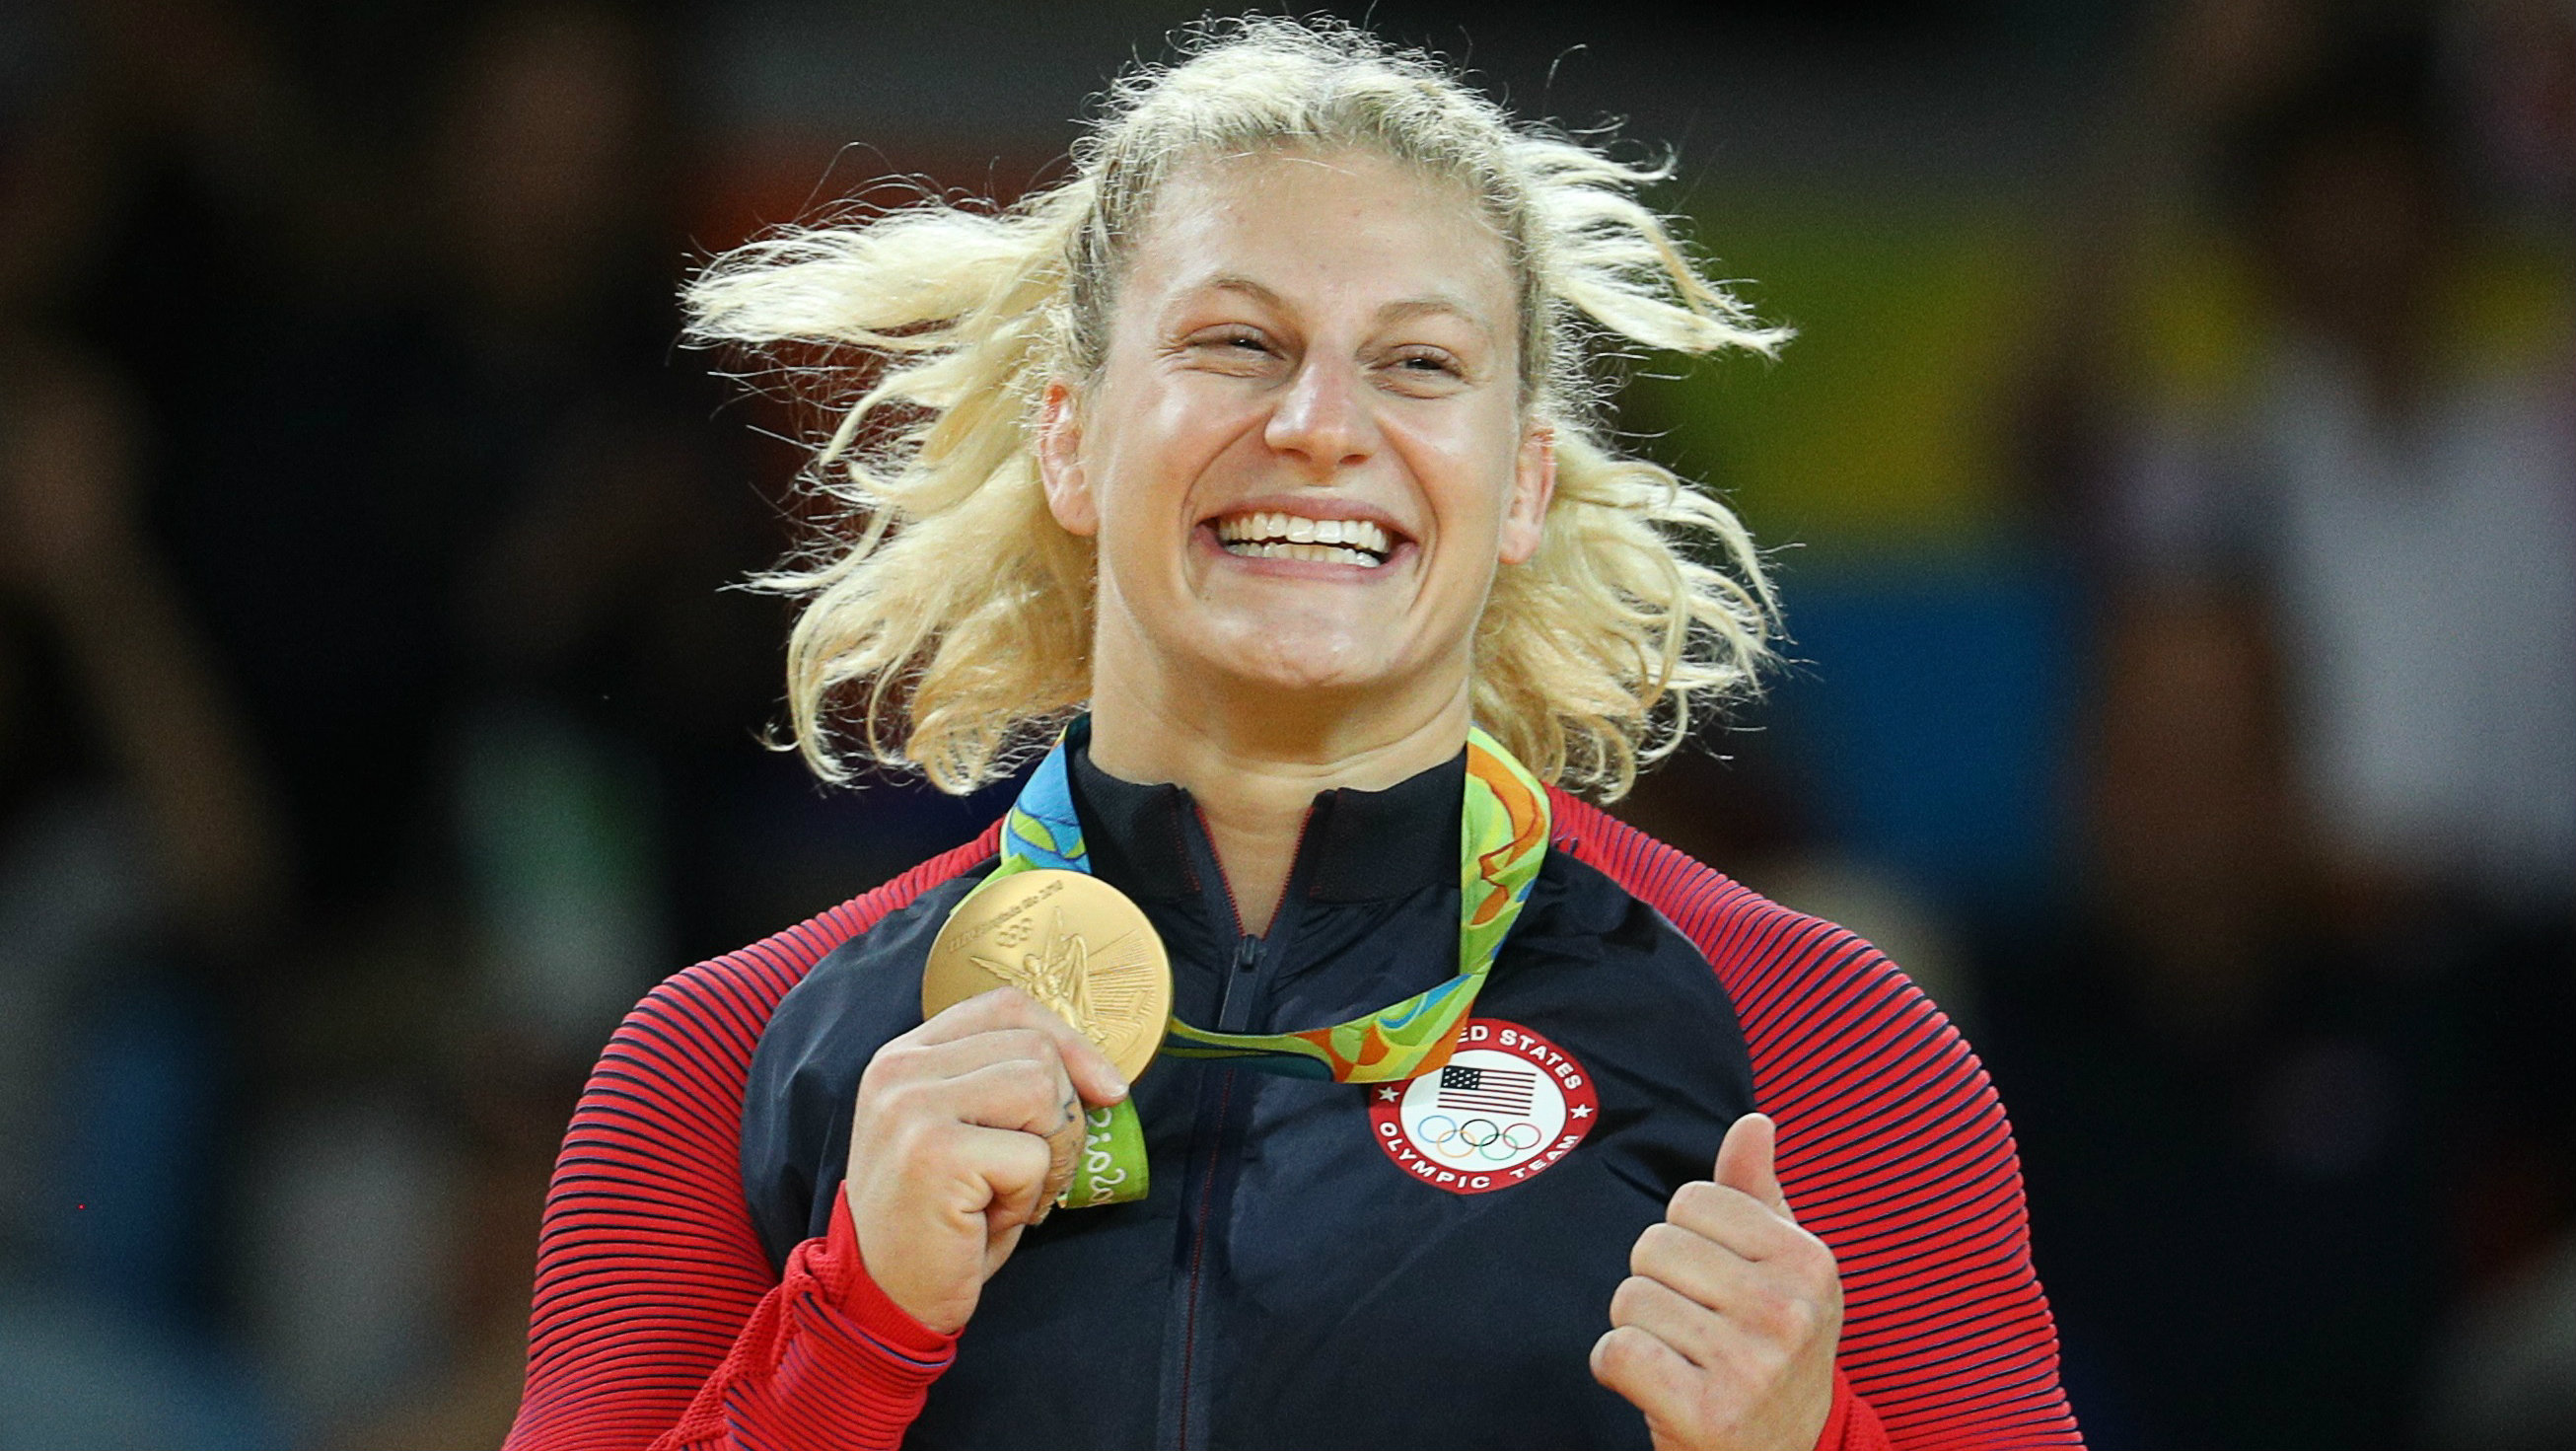 Kayla Harrison wins another gold - thanks to her lucky socks?